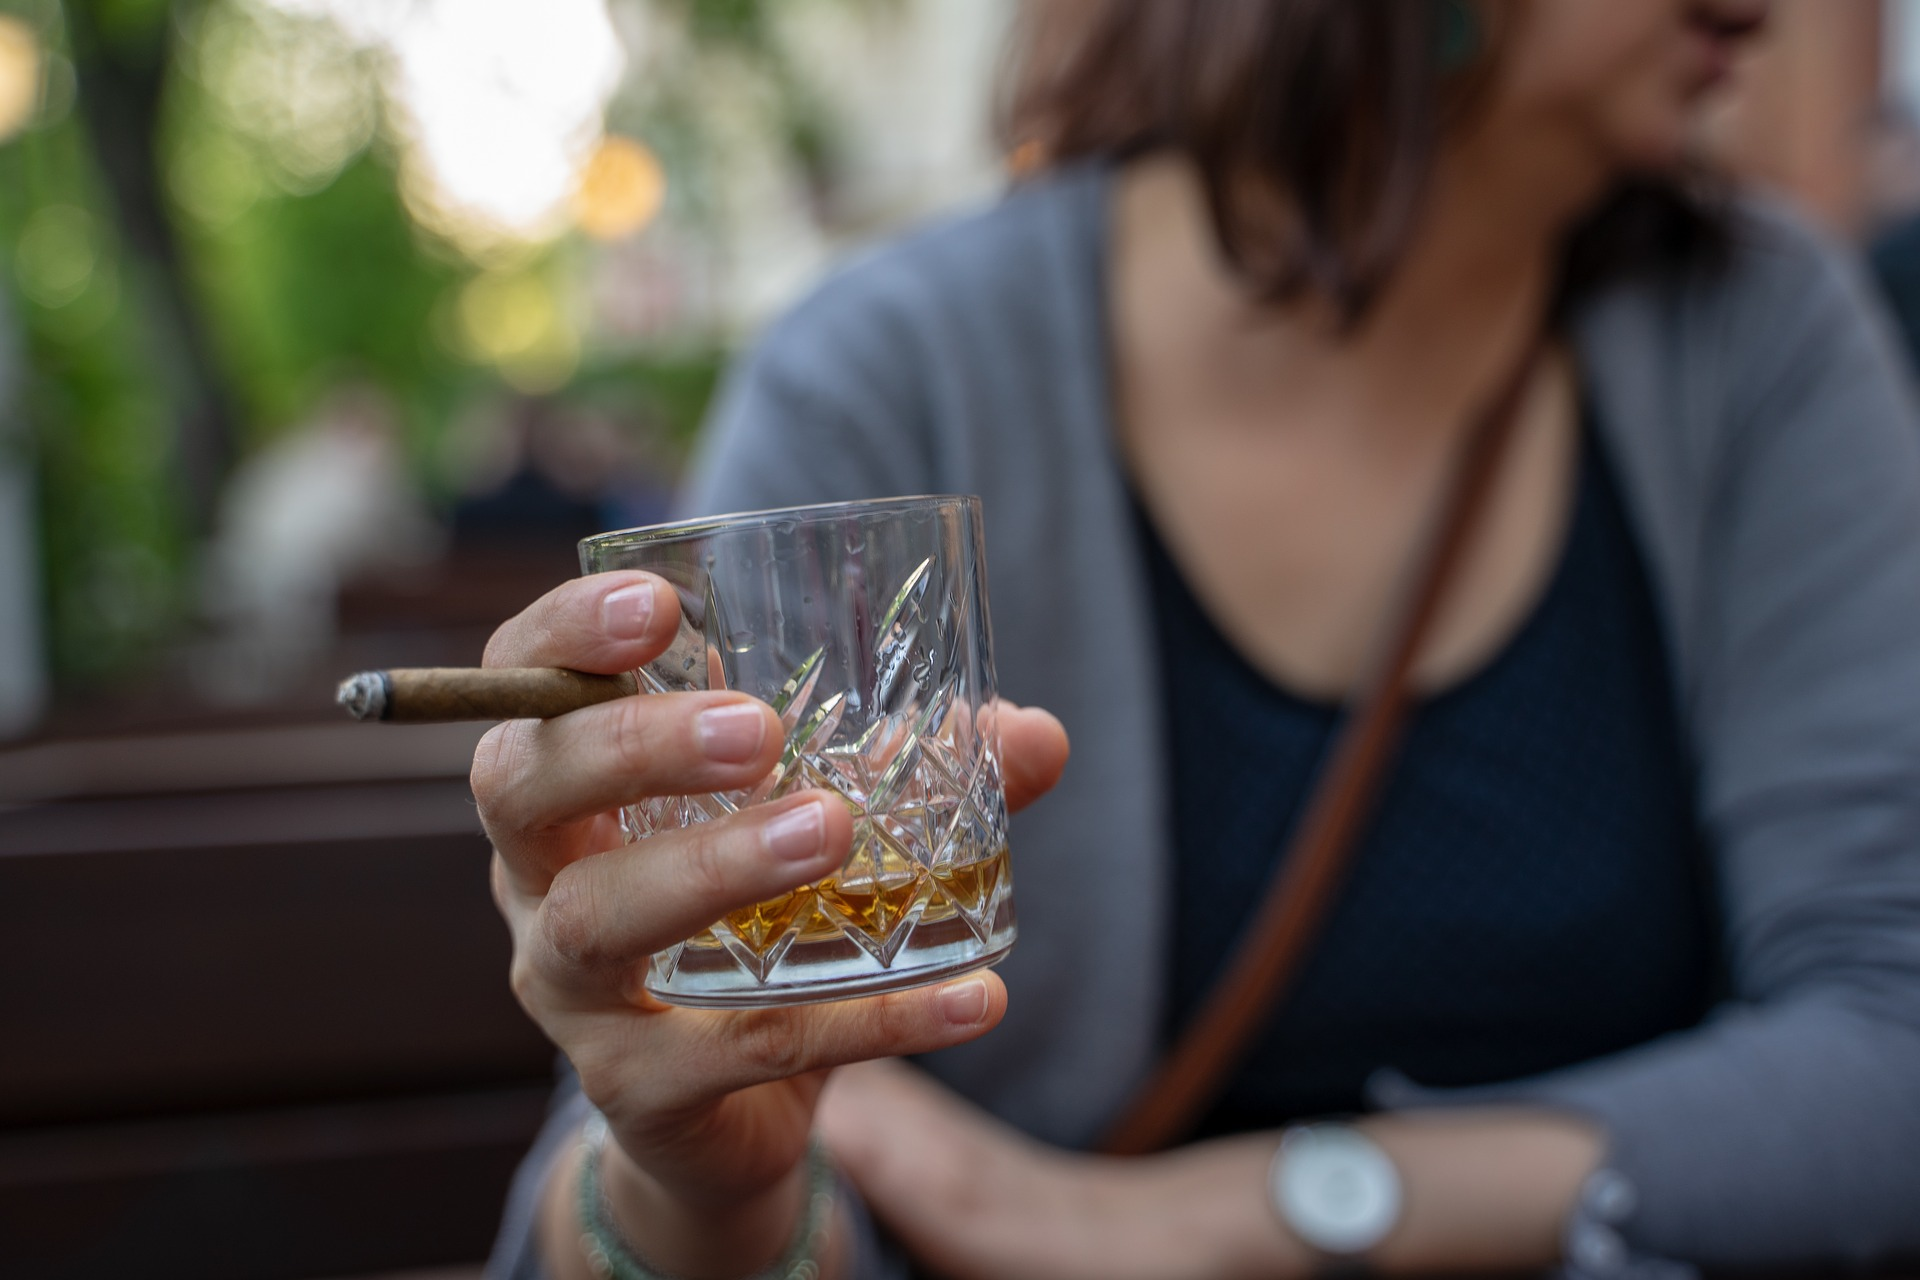 whiskey cigar - 4 Myths You Might Have About Addiction